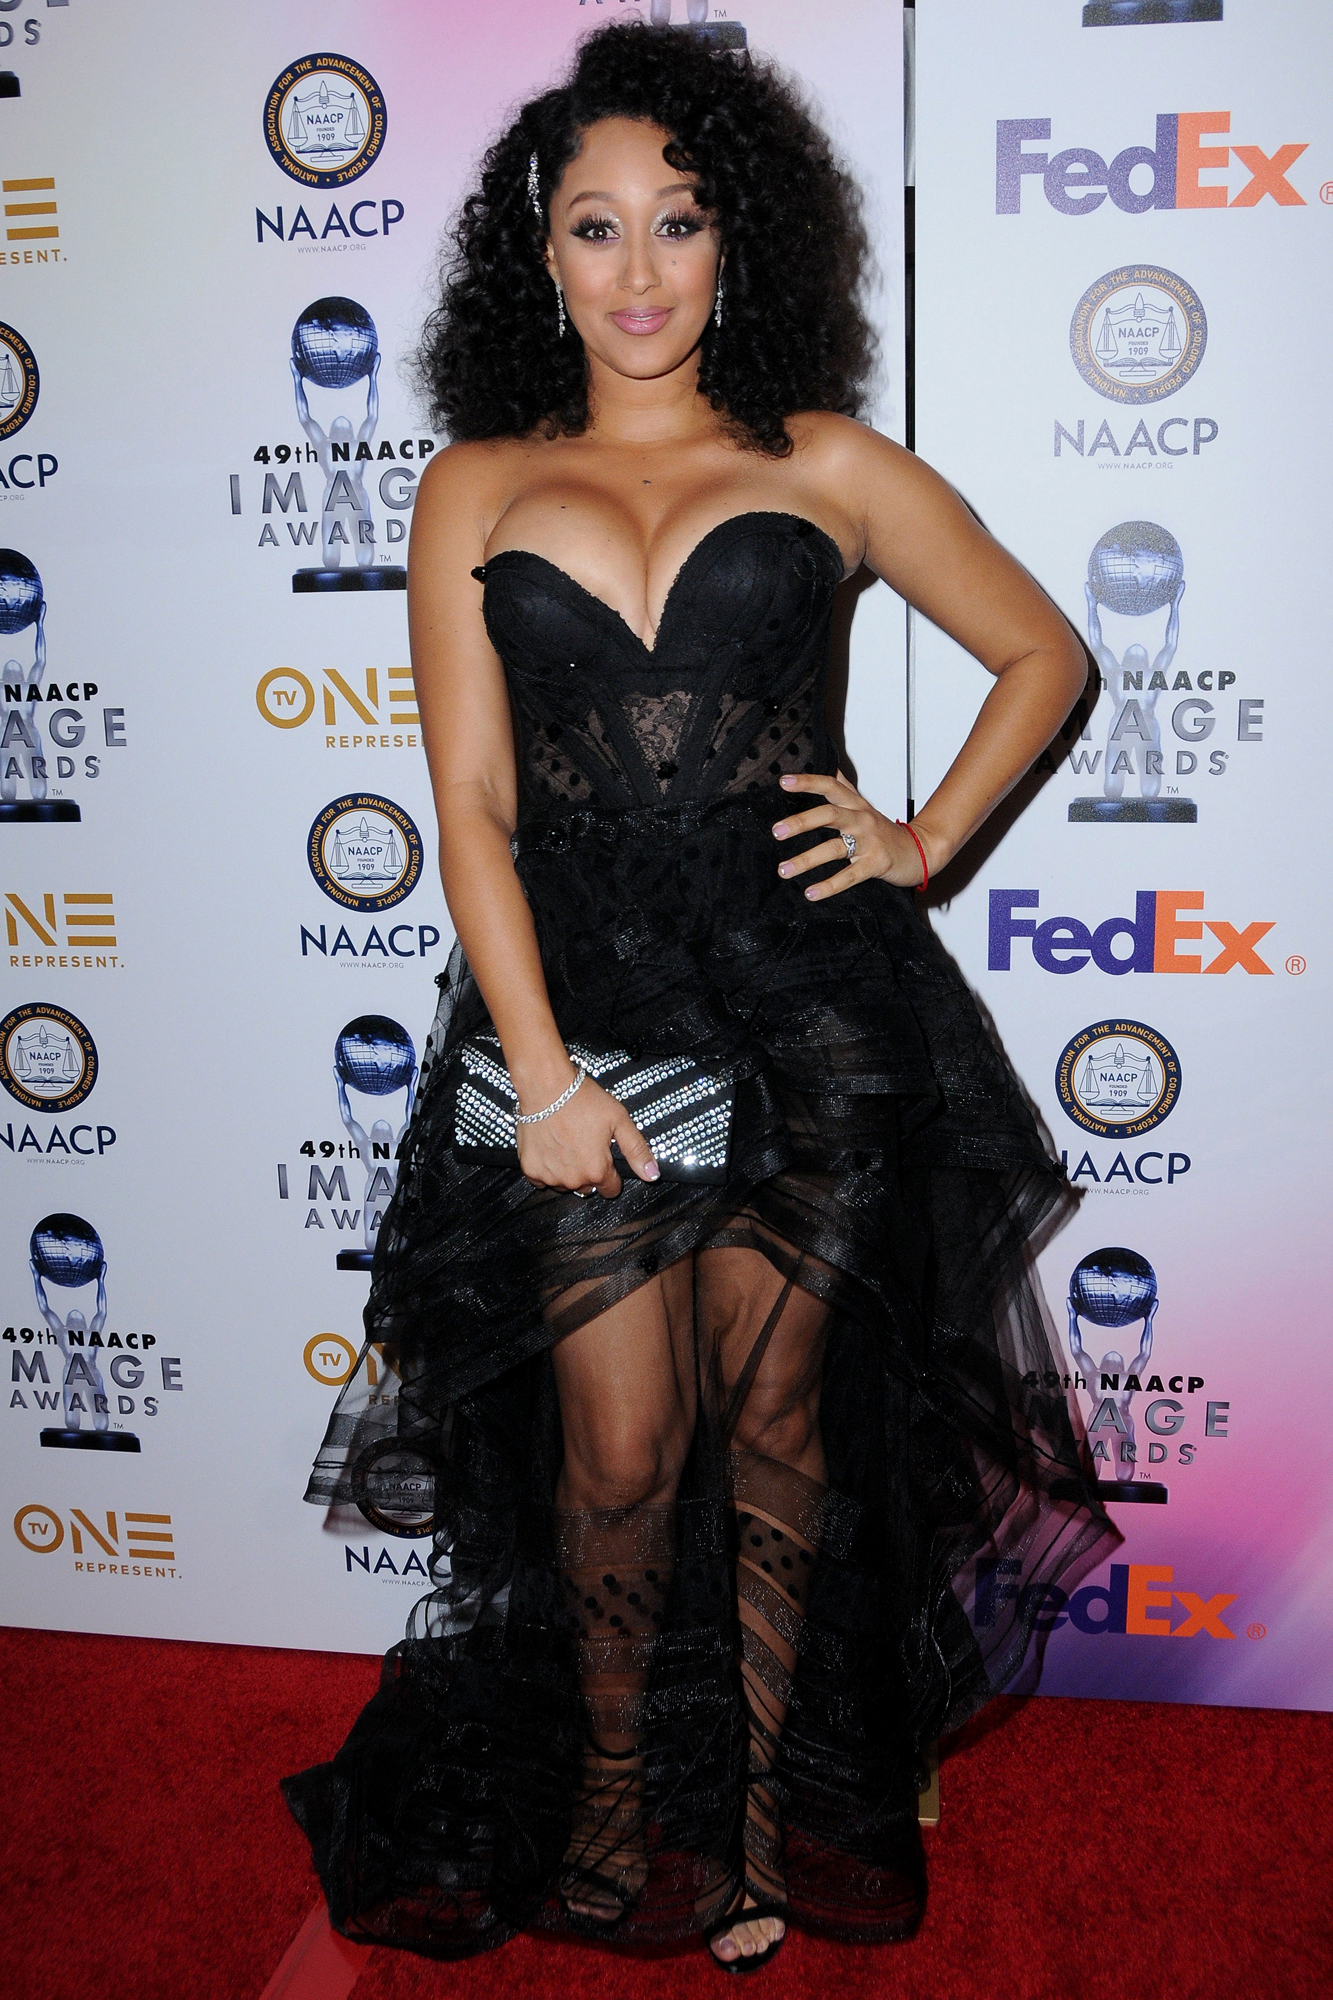 49th NAACP Image Awards Dinner and Ceremony